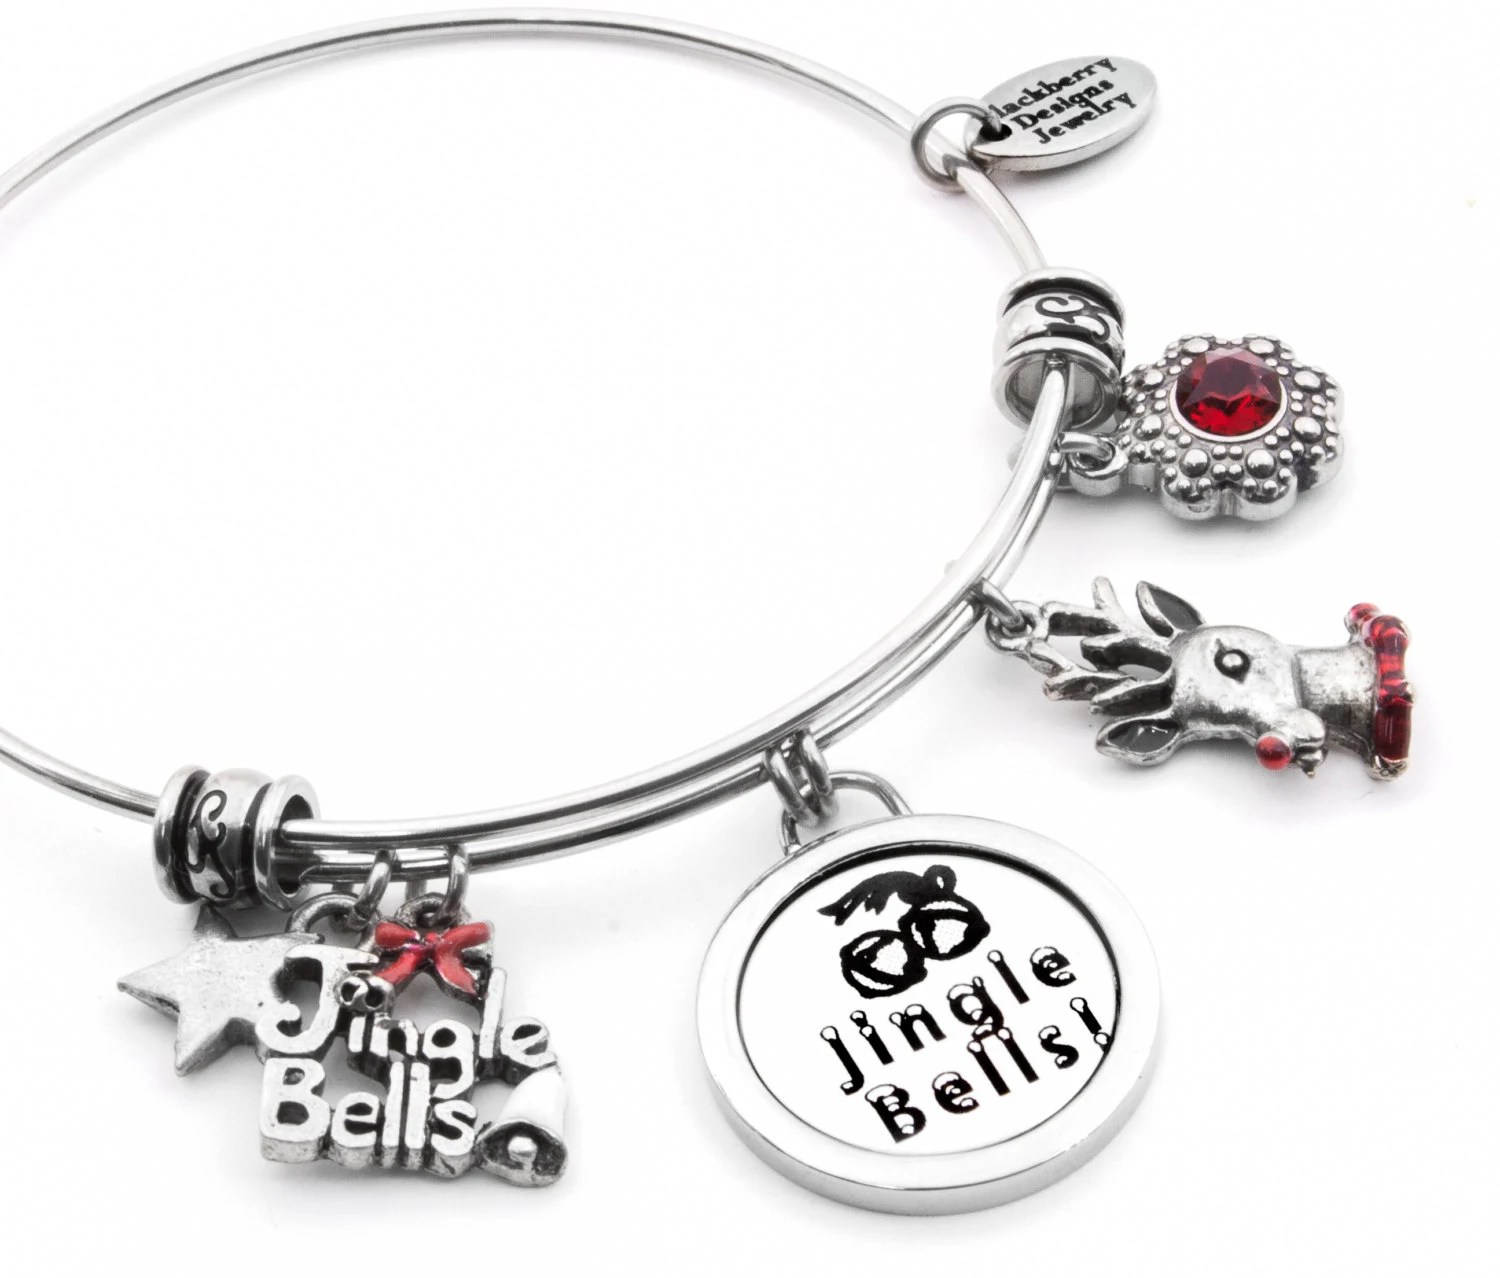 Reindeer Bangle Bracelet With Jingle Bell Charms And Ruby